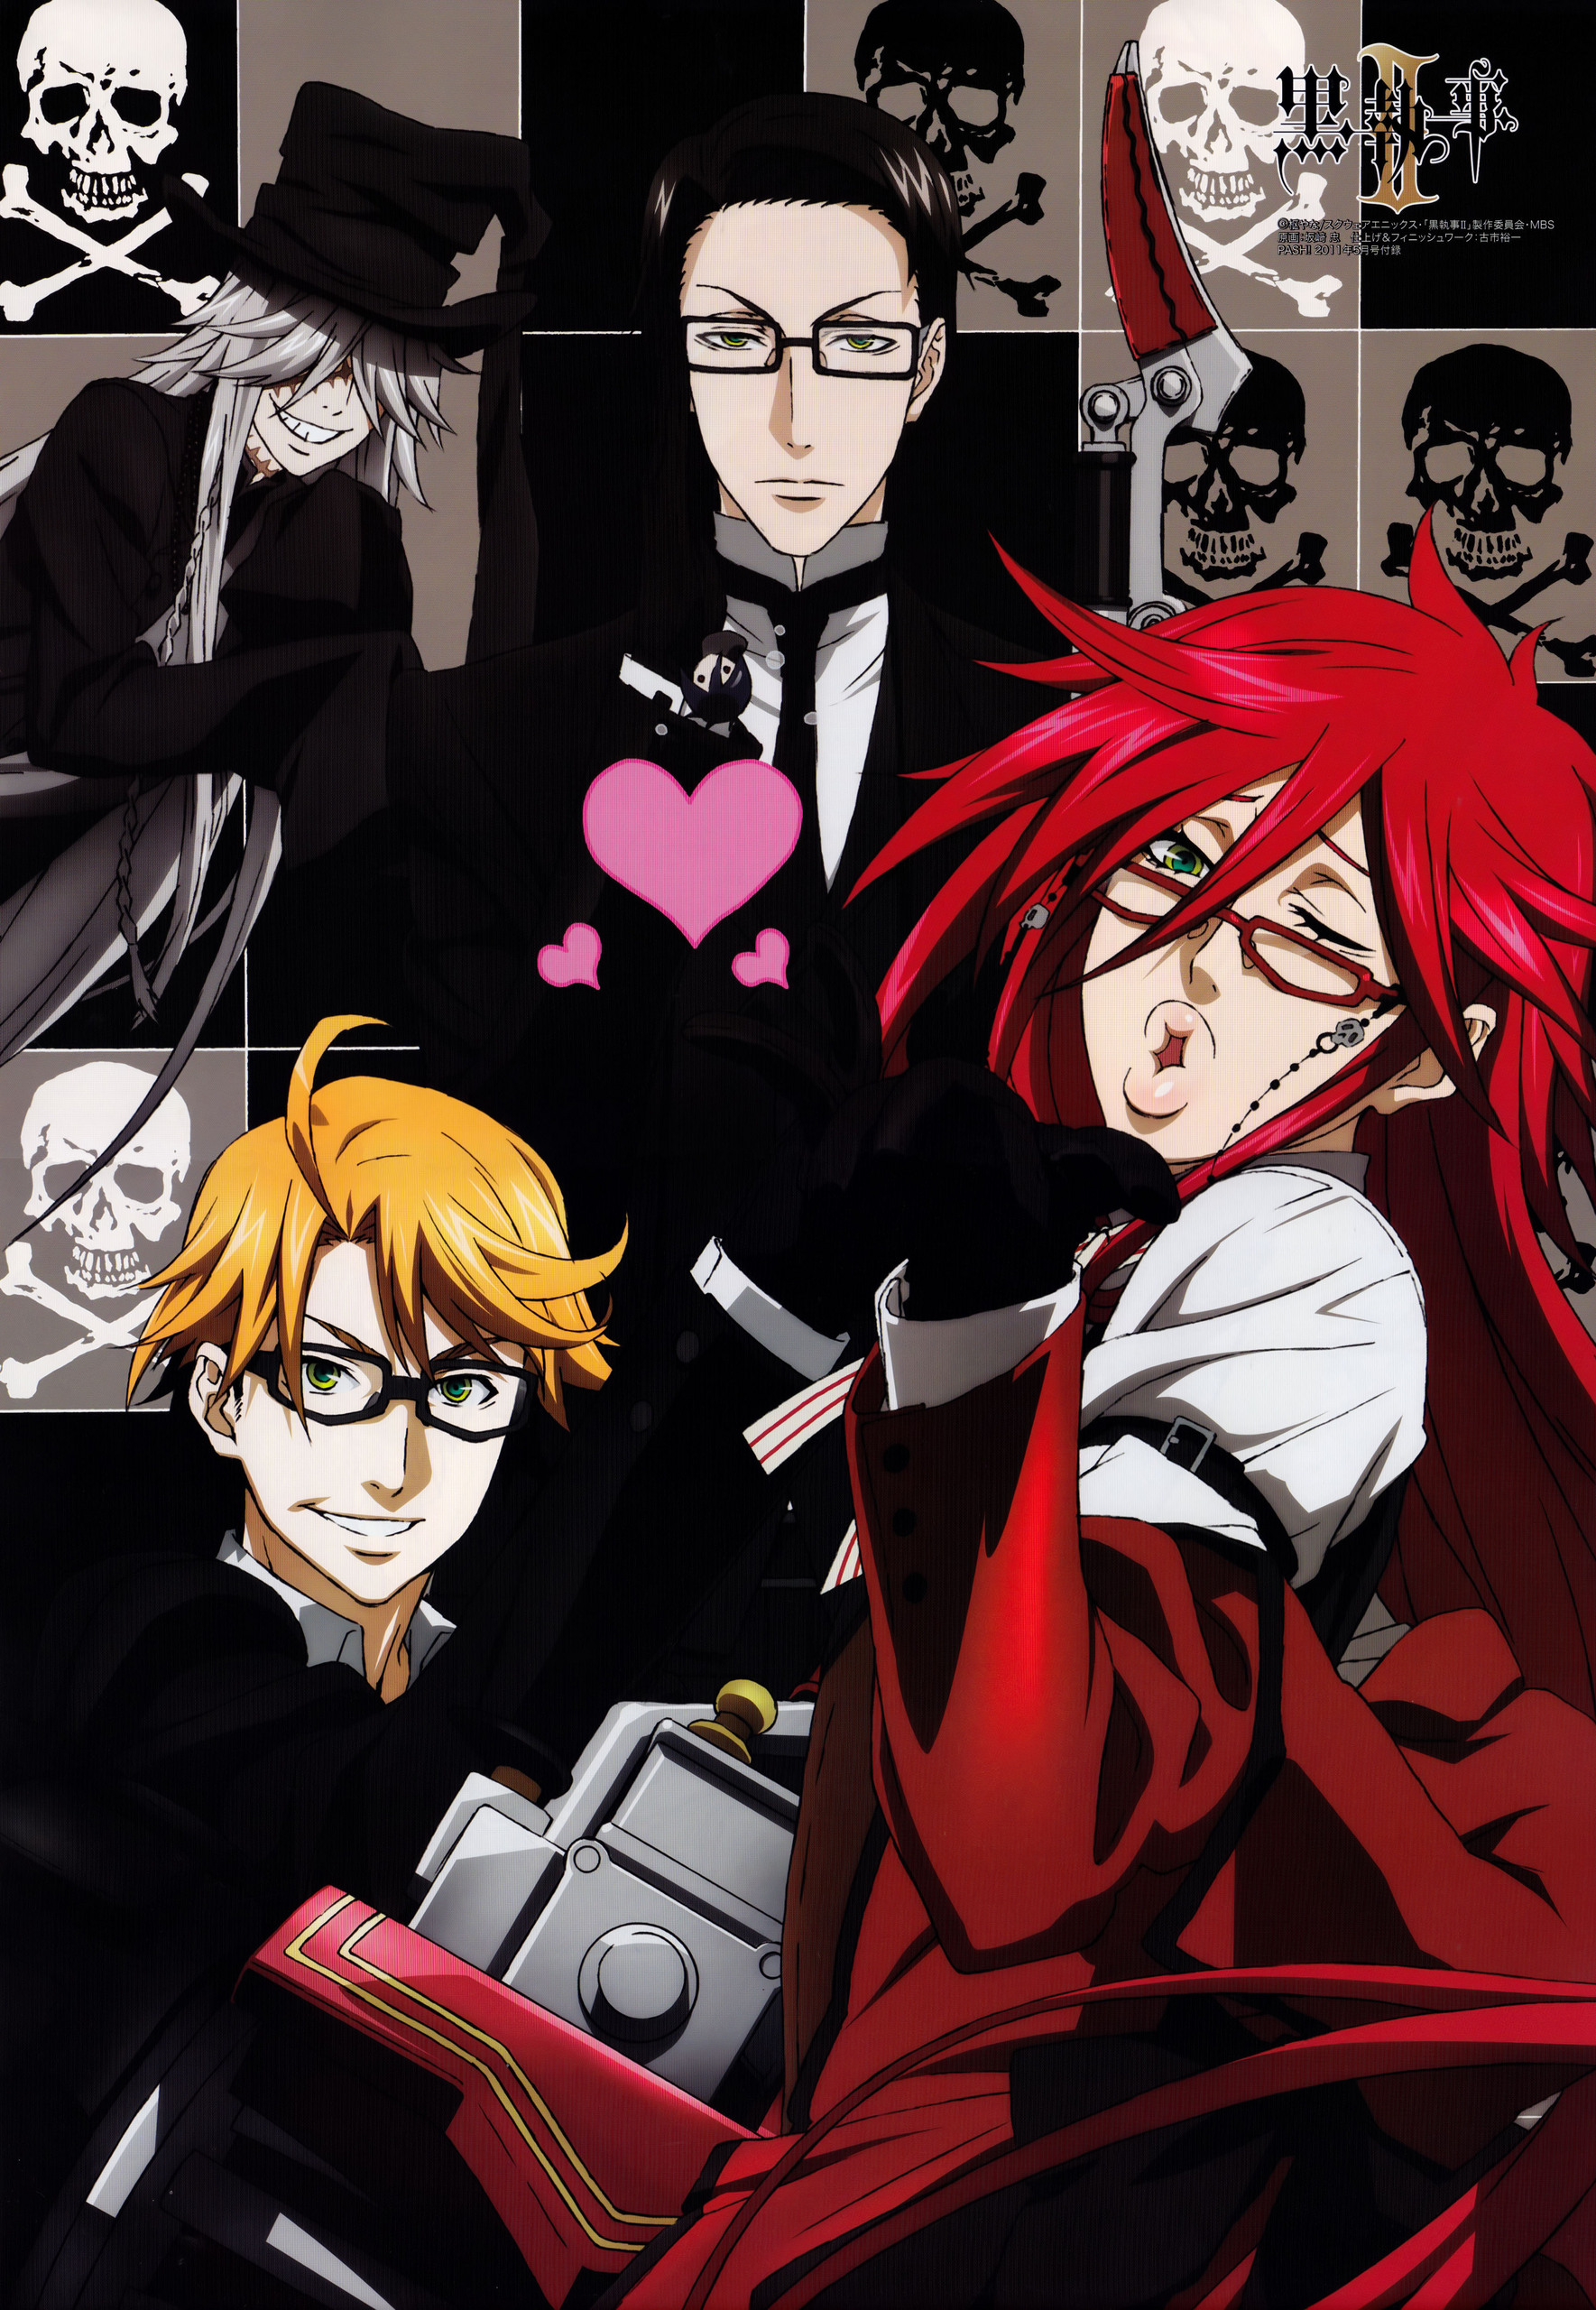 Grell SutcliffUndertaker  Works  Archive of Our Own